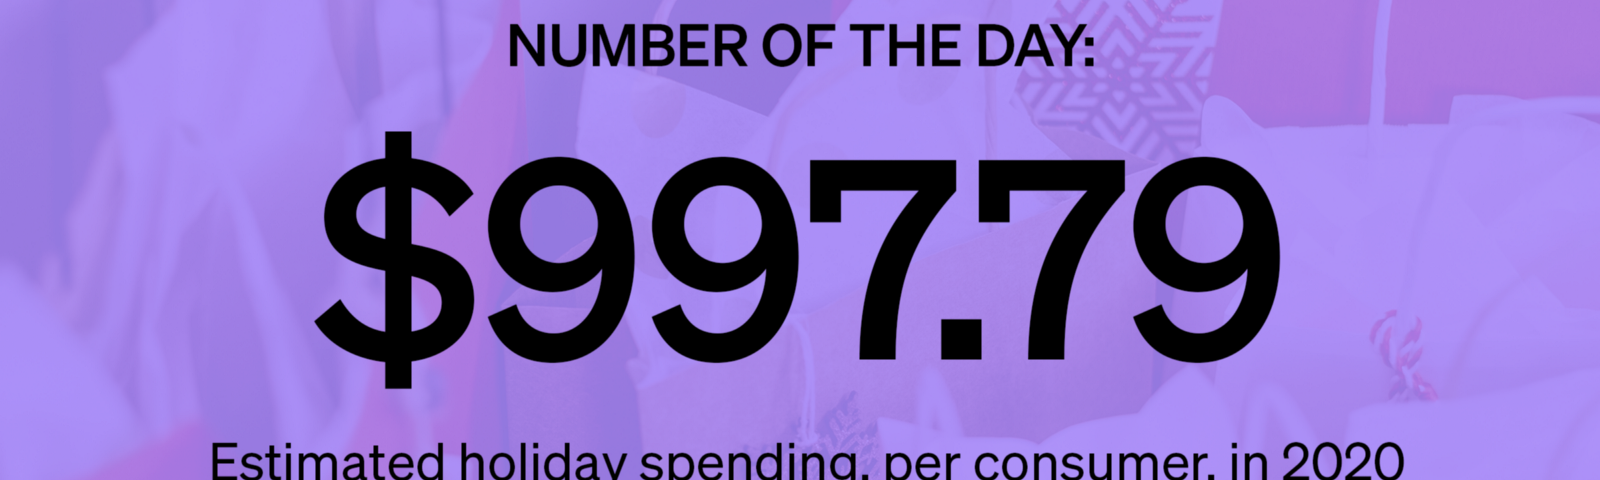 Marker Number of the Day: $997.79—Estimated holiday spending, per consumer, in 2020 (Source: National Retail Federation)